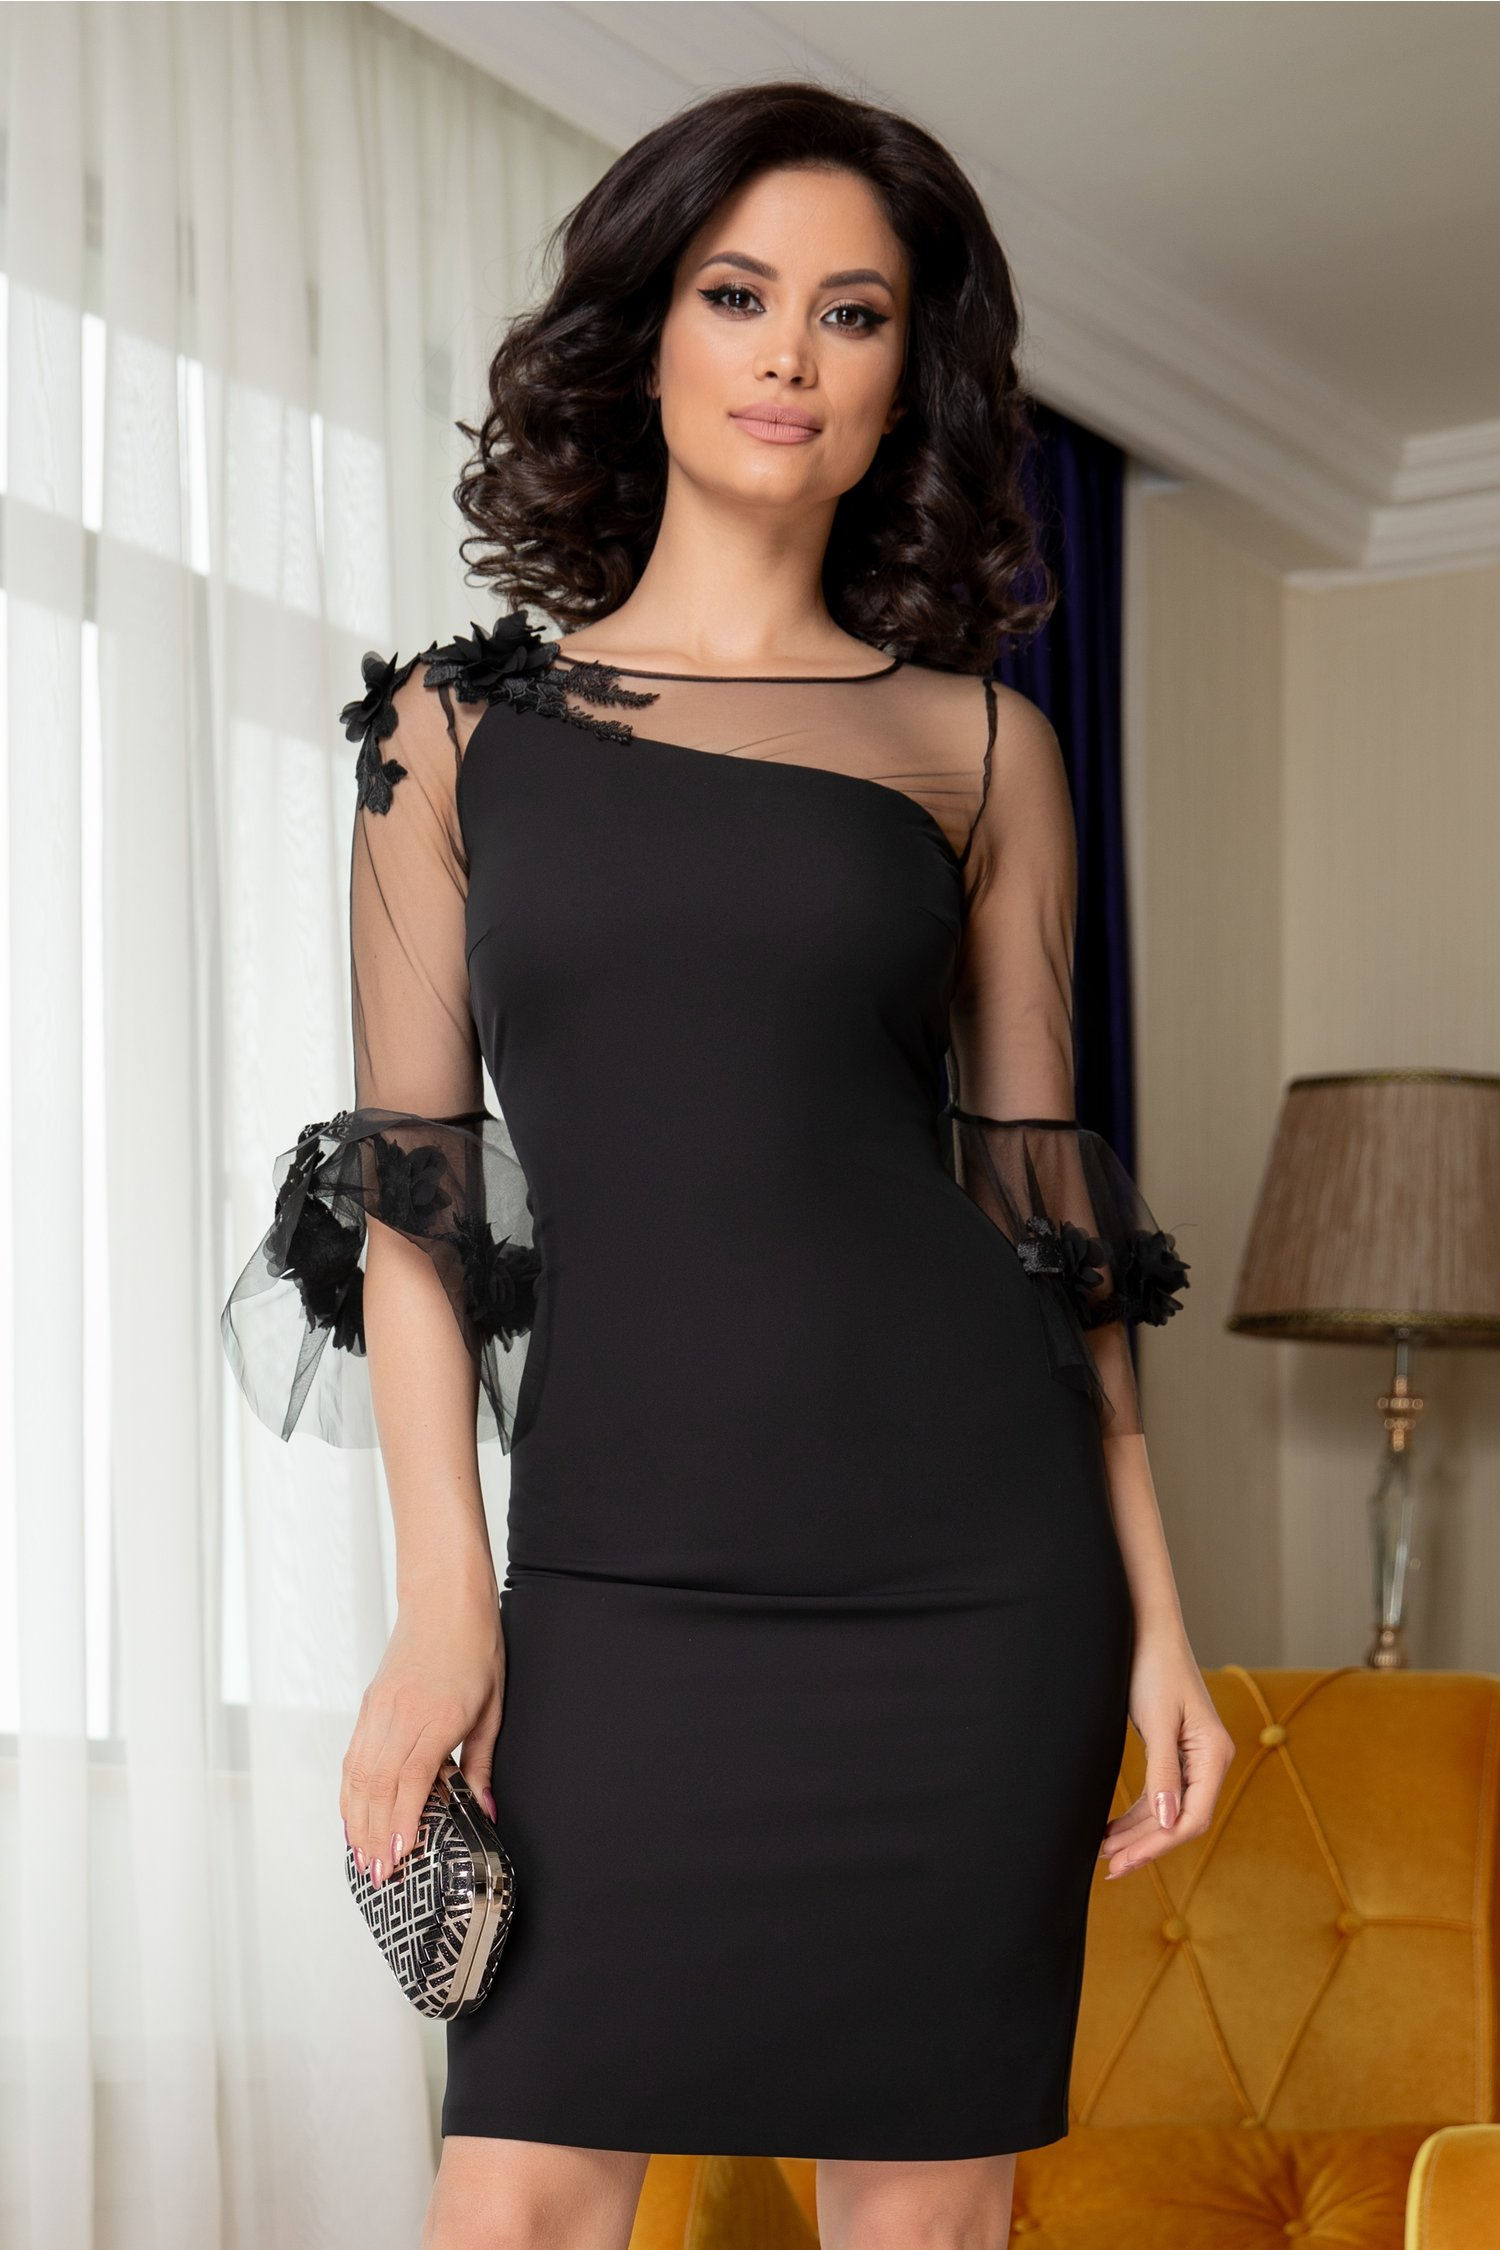 Rochie Leonard Collection neagra cu maneci tip clopot si broderie 3D